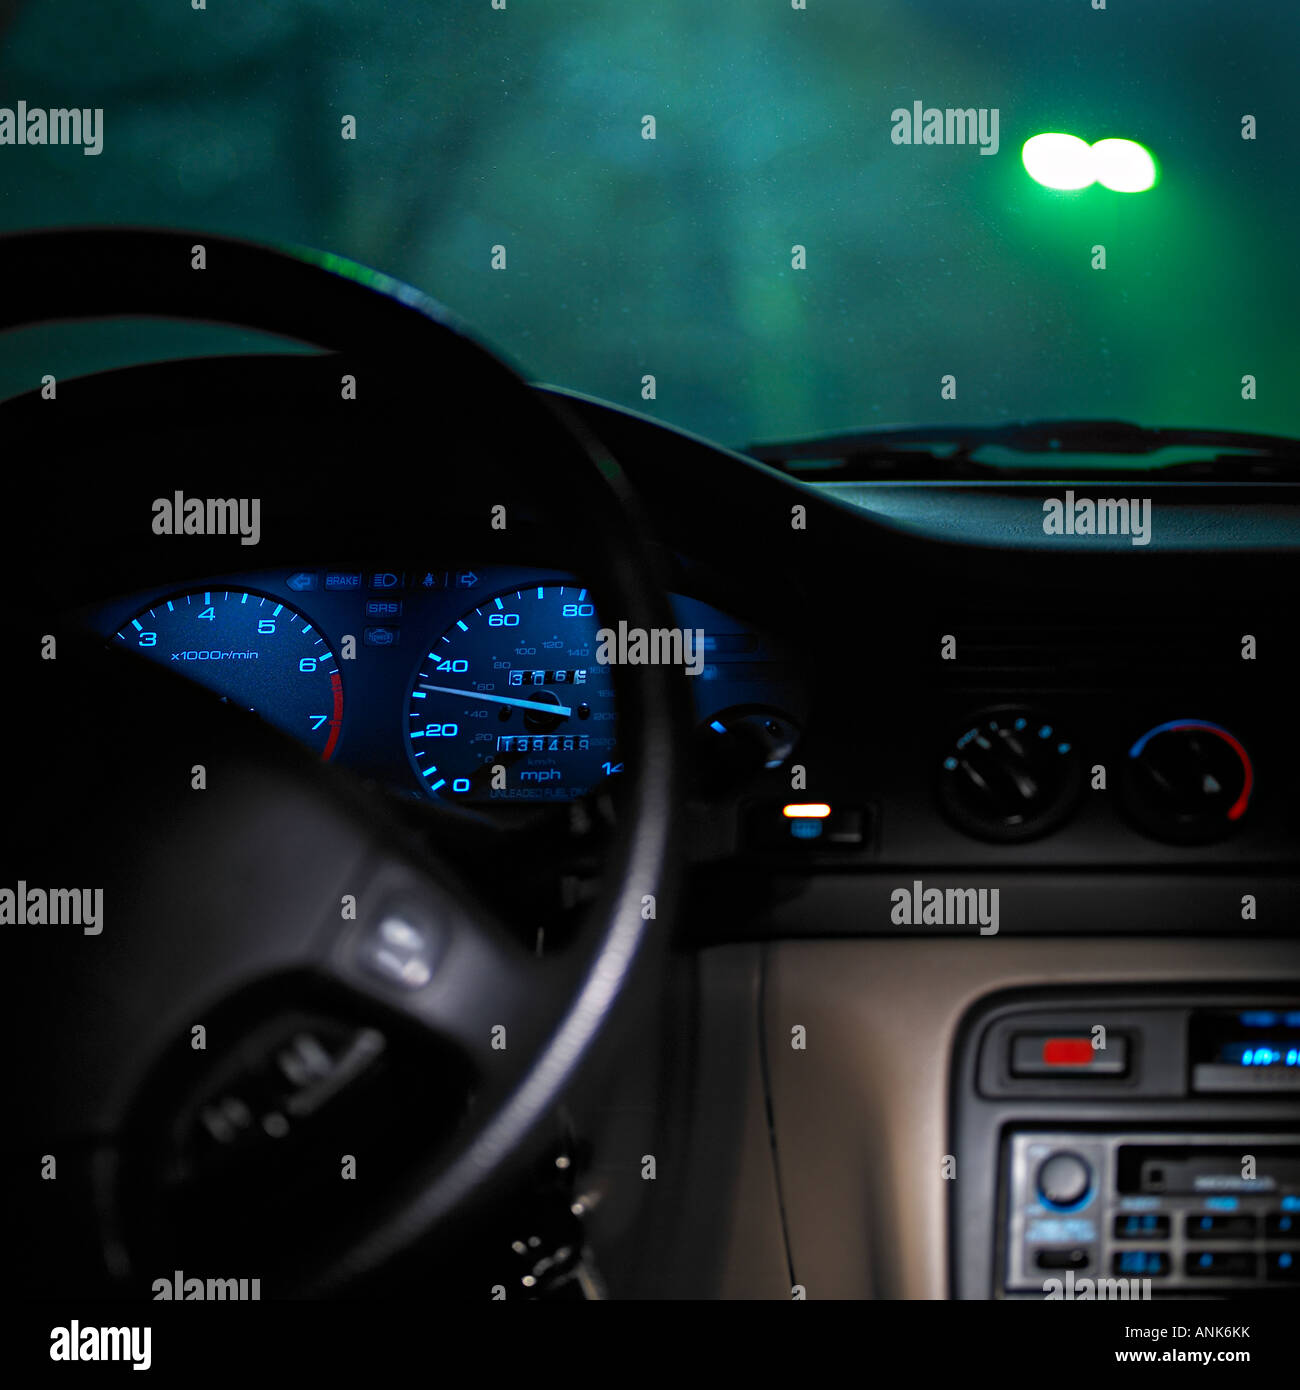 Headlight of approaching car through the windshield of other car with some interior elements and dashboard lights - Stock Image